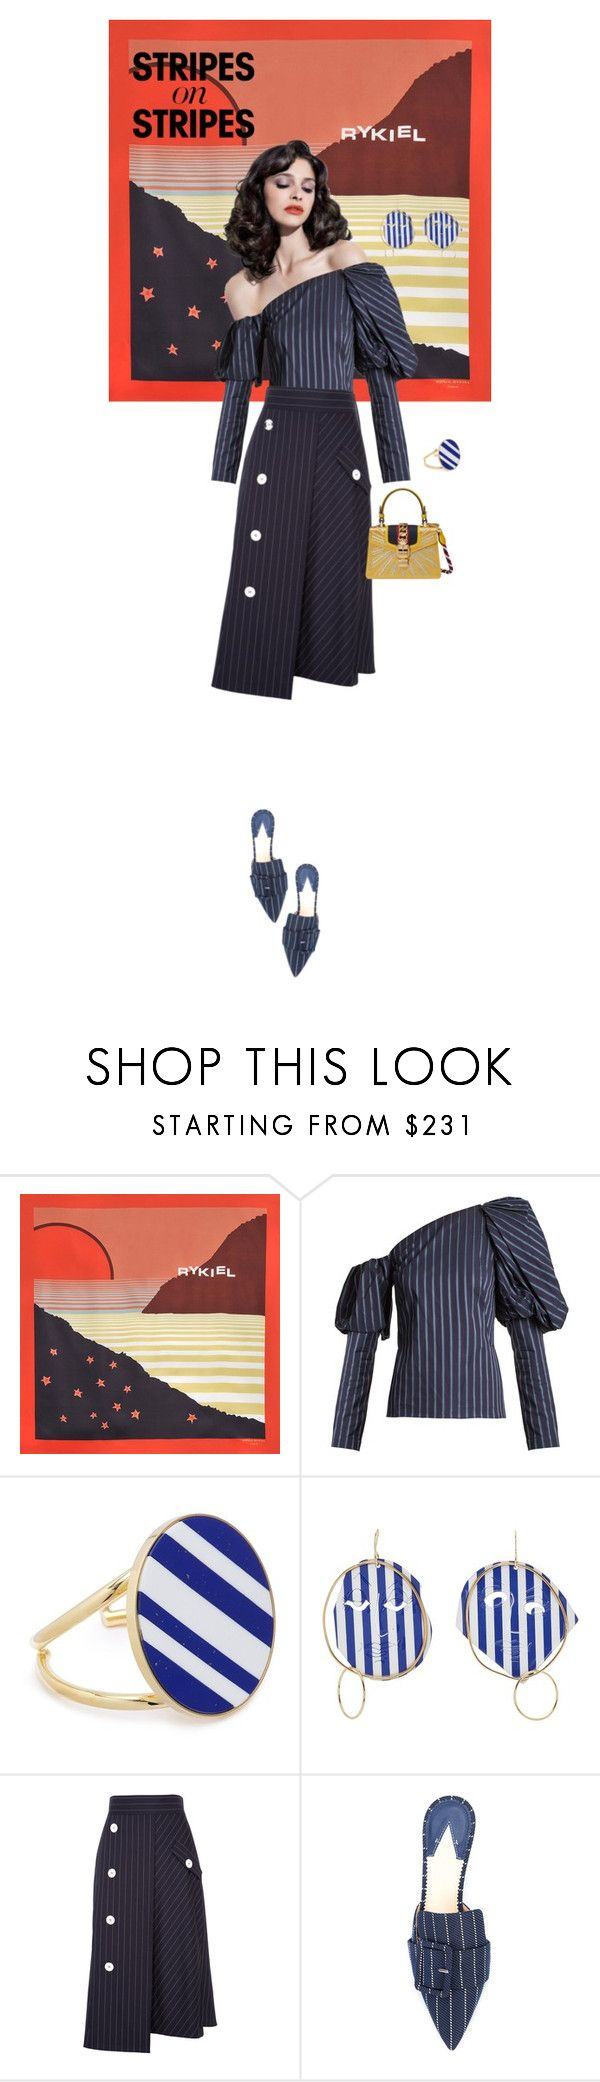 """""""💃"""" by ladyarchitect ❤ liked on Polyvore featuring Sonia Rykiel, Osman, Joanna Laura Constantine, J.W. Anderson, Dorothee Schumacher, Altuzarra, Gucci, stripesonstripes and PatternChallenge"""